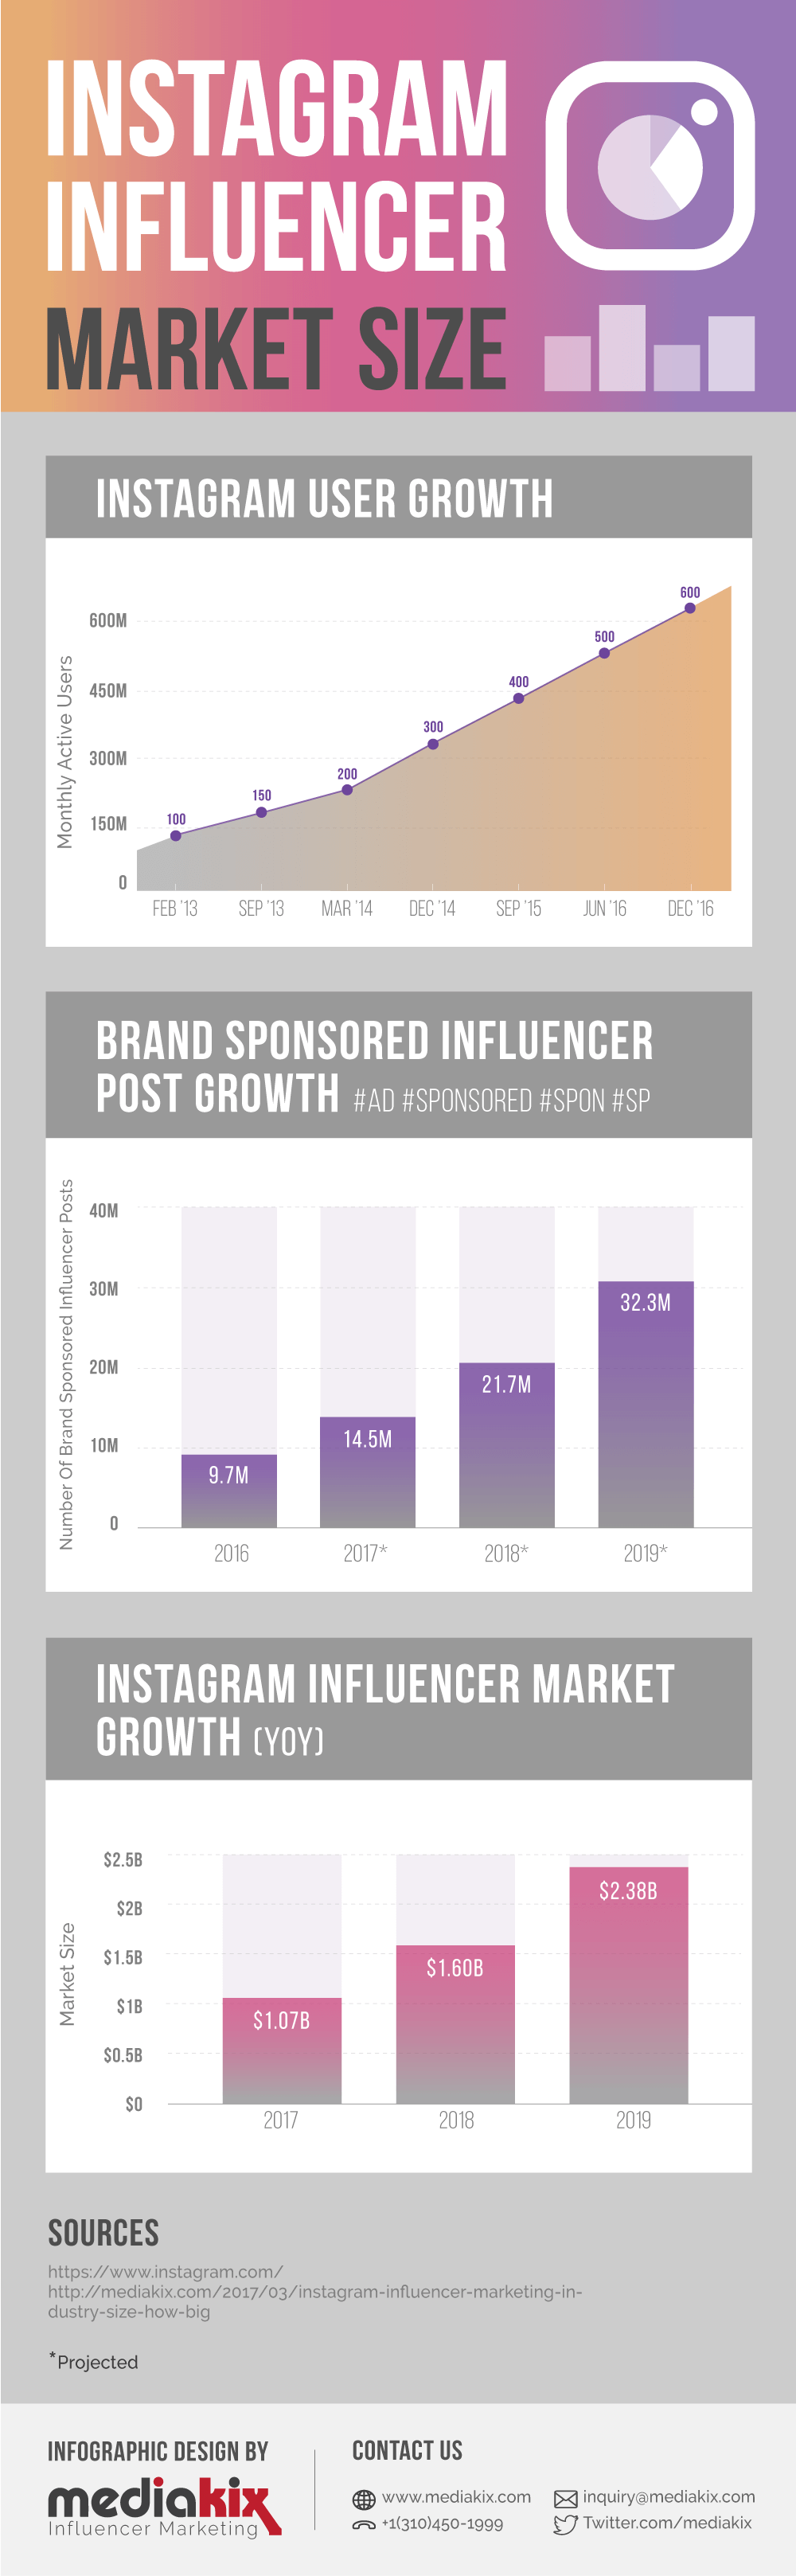 wersm-Instagram-Influencer-Marketing-Infographic-Industry-Market-Size